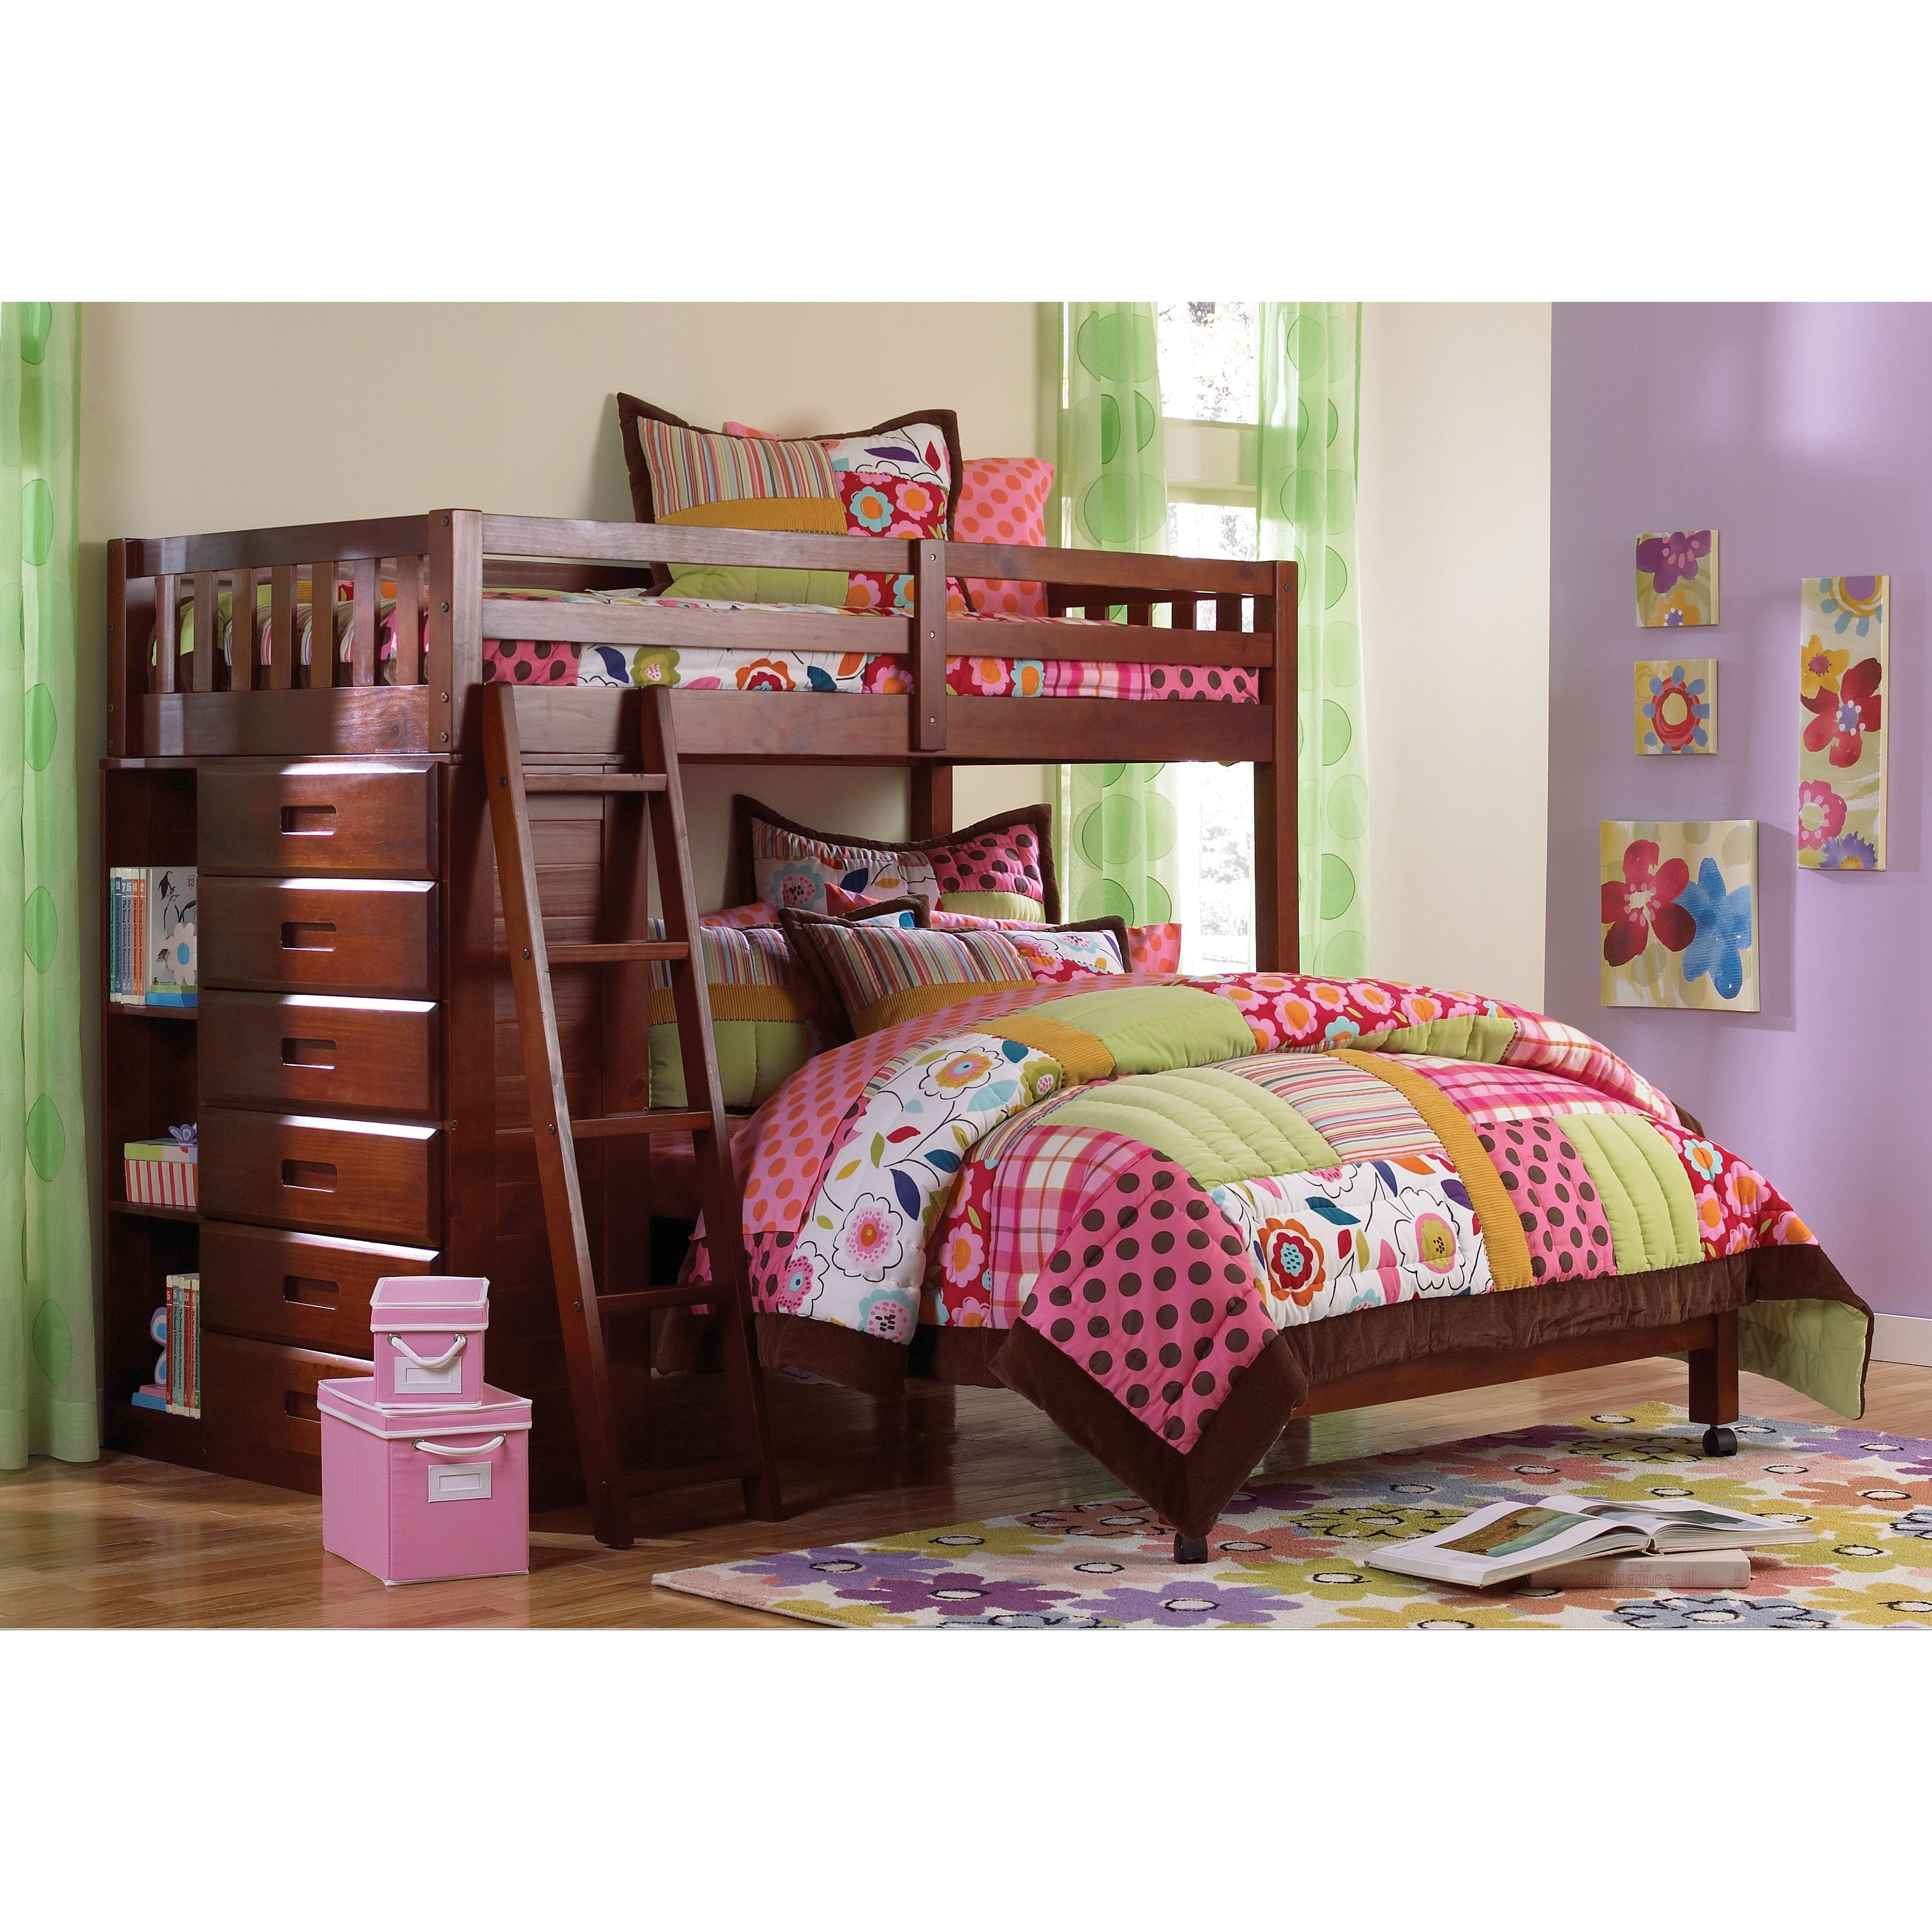 Loft over bedroom  This loft bedus rich merlot finish features a twin over full bunk